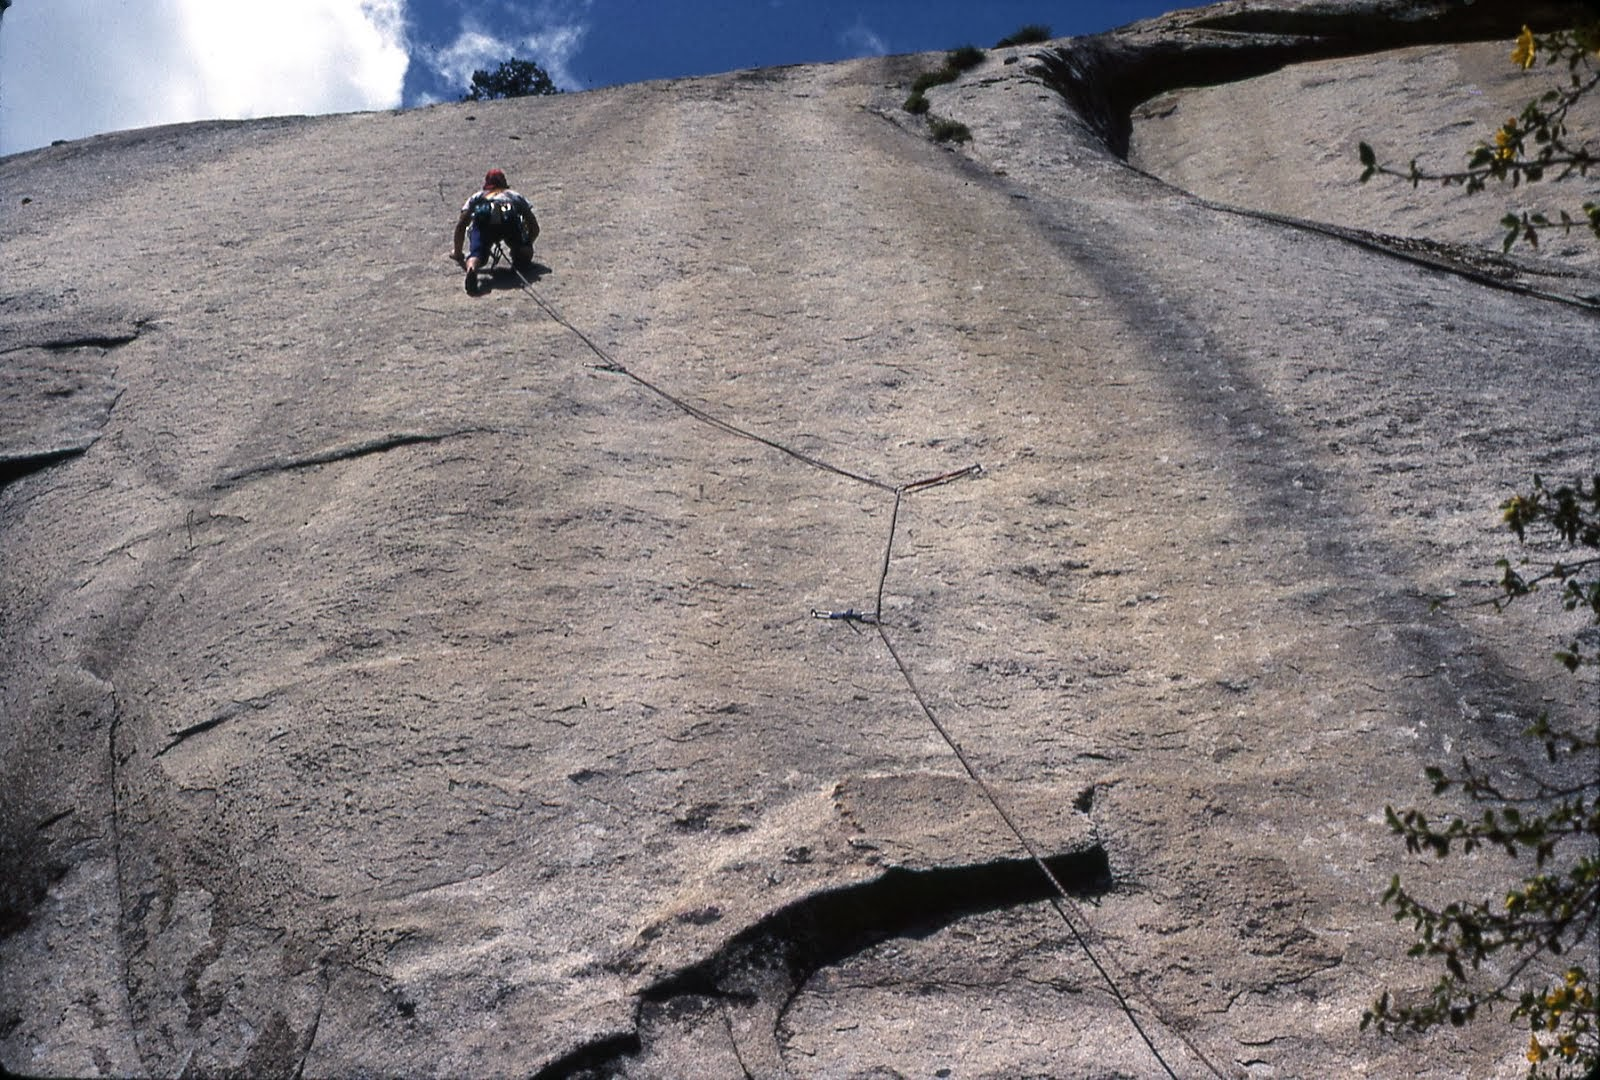 Second Ascent of 'Entasis' 5.11